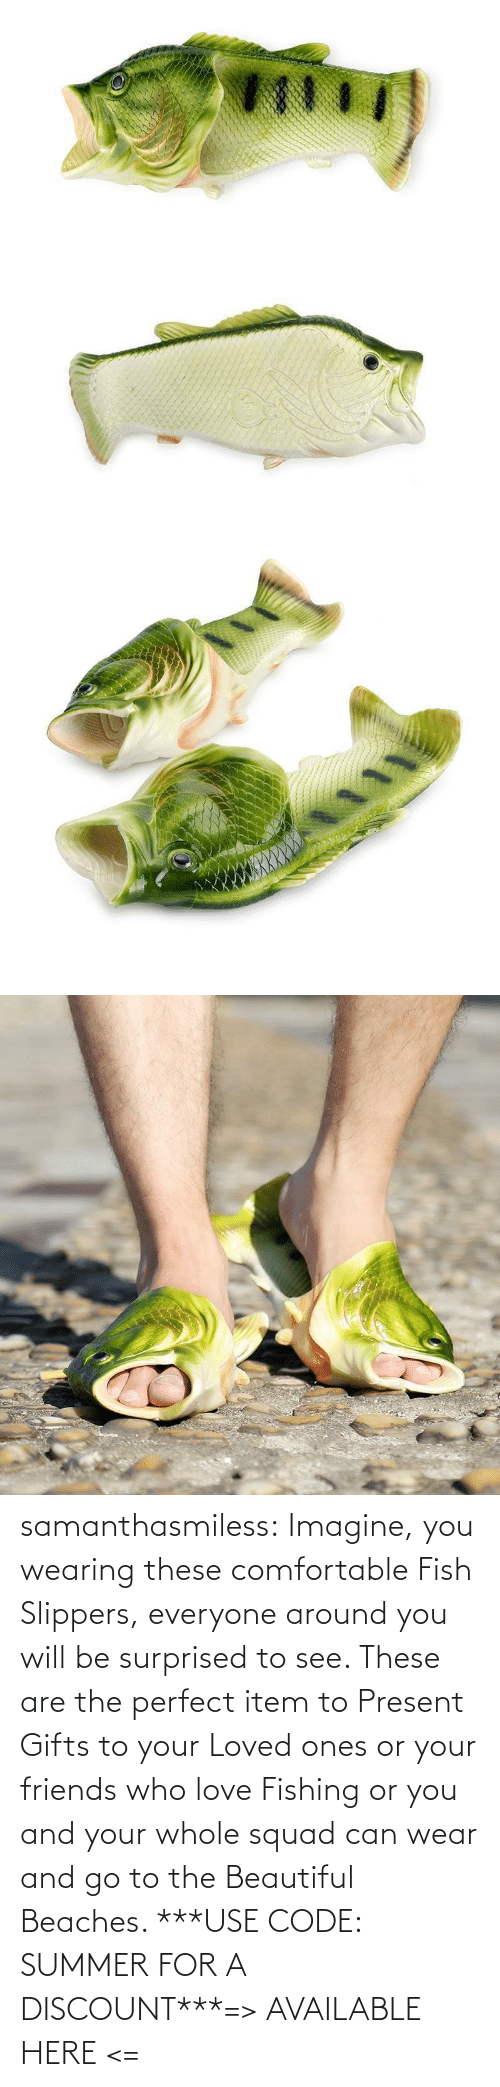 use: samanthasmiless:  Imagine, you wearing these comfortable Fish Slippers, everyone around you will be surprised to see. These are the perfect item to Present Gifts to your Loved ones or your friends who love Fishing or you and your whole squad can wear and go to the Beautiful Beaches. ***USE CODE: SUMMER FOR A DISCOUNT***=> AVAILABLE HERE <=